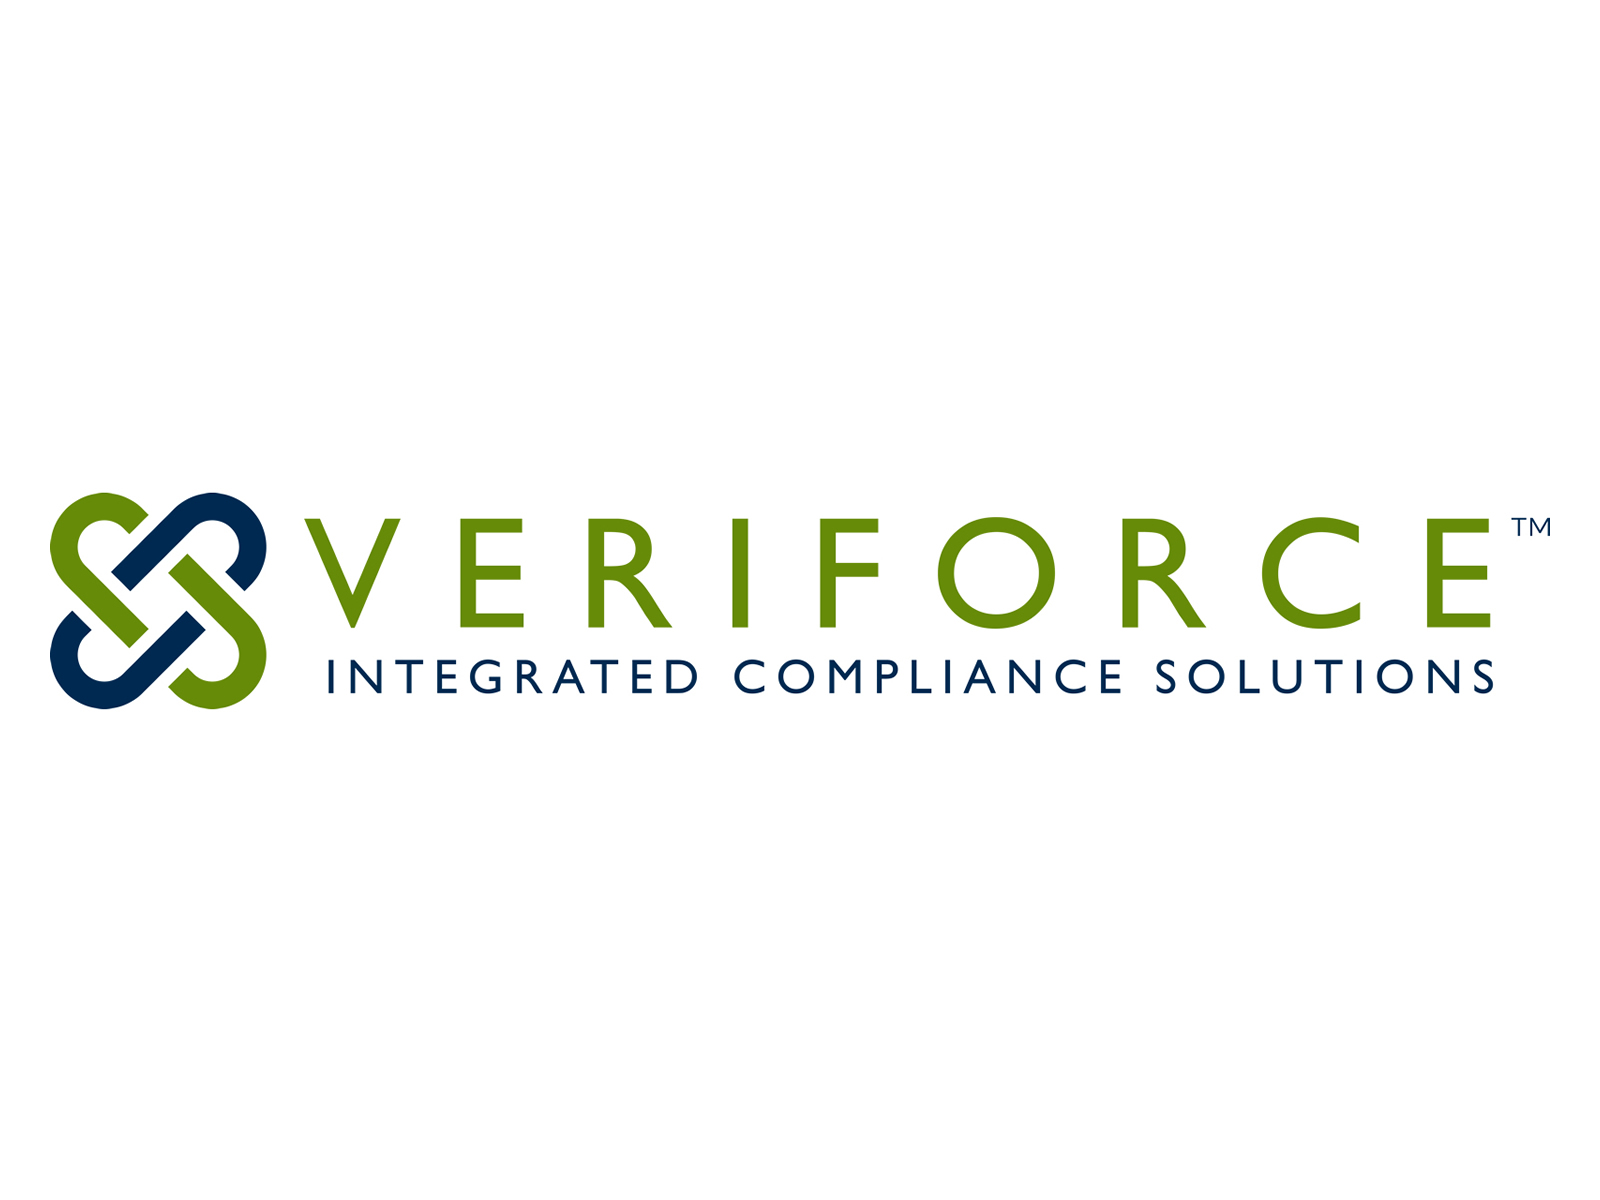 Delivering integrated OQ, drug & alcohol, safety, and COI compliance solutions that combine software and services to enhance workforce and community safety. Compliance Software for PHMSA OQ, D&A, and OSHA Safety | Veriforce